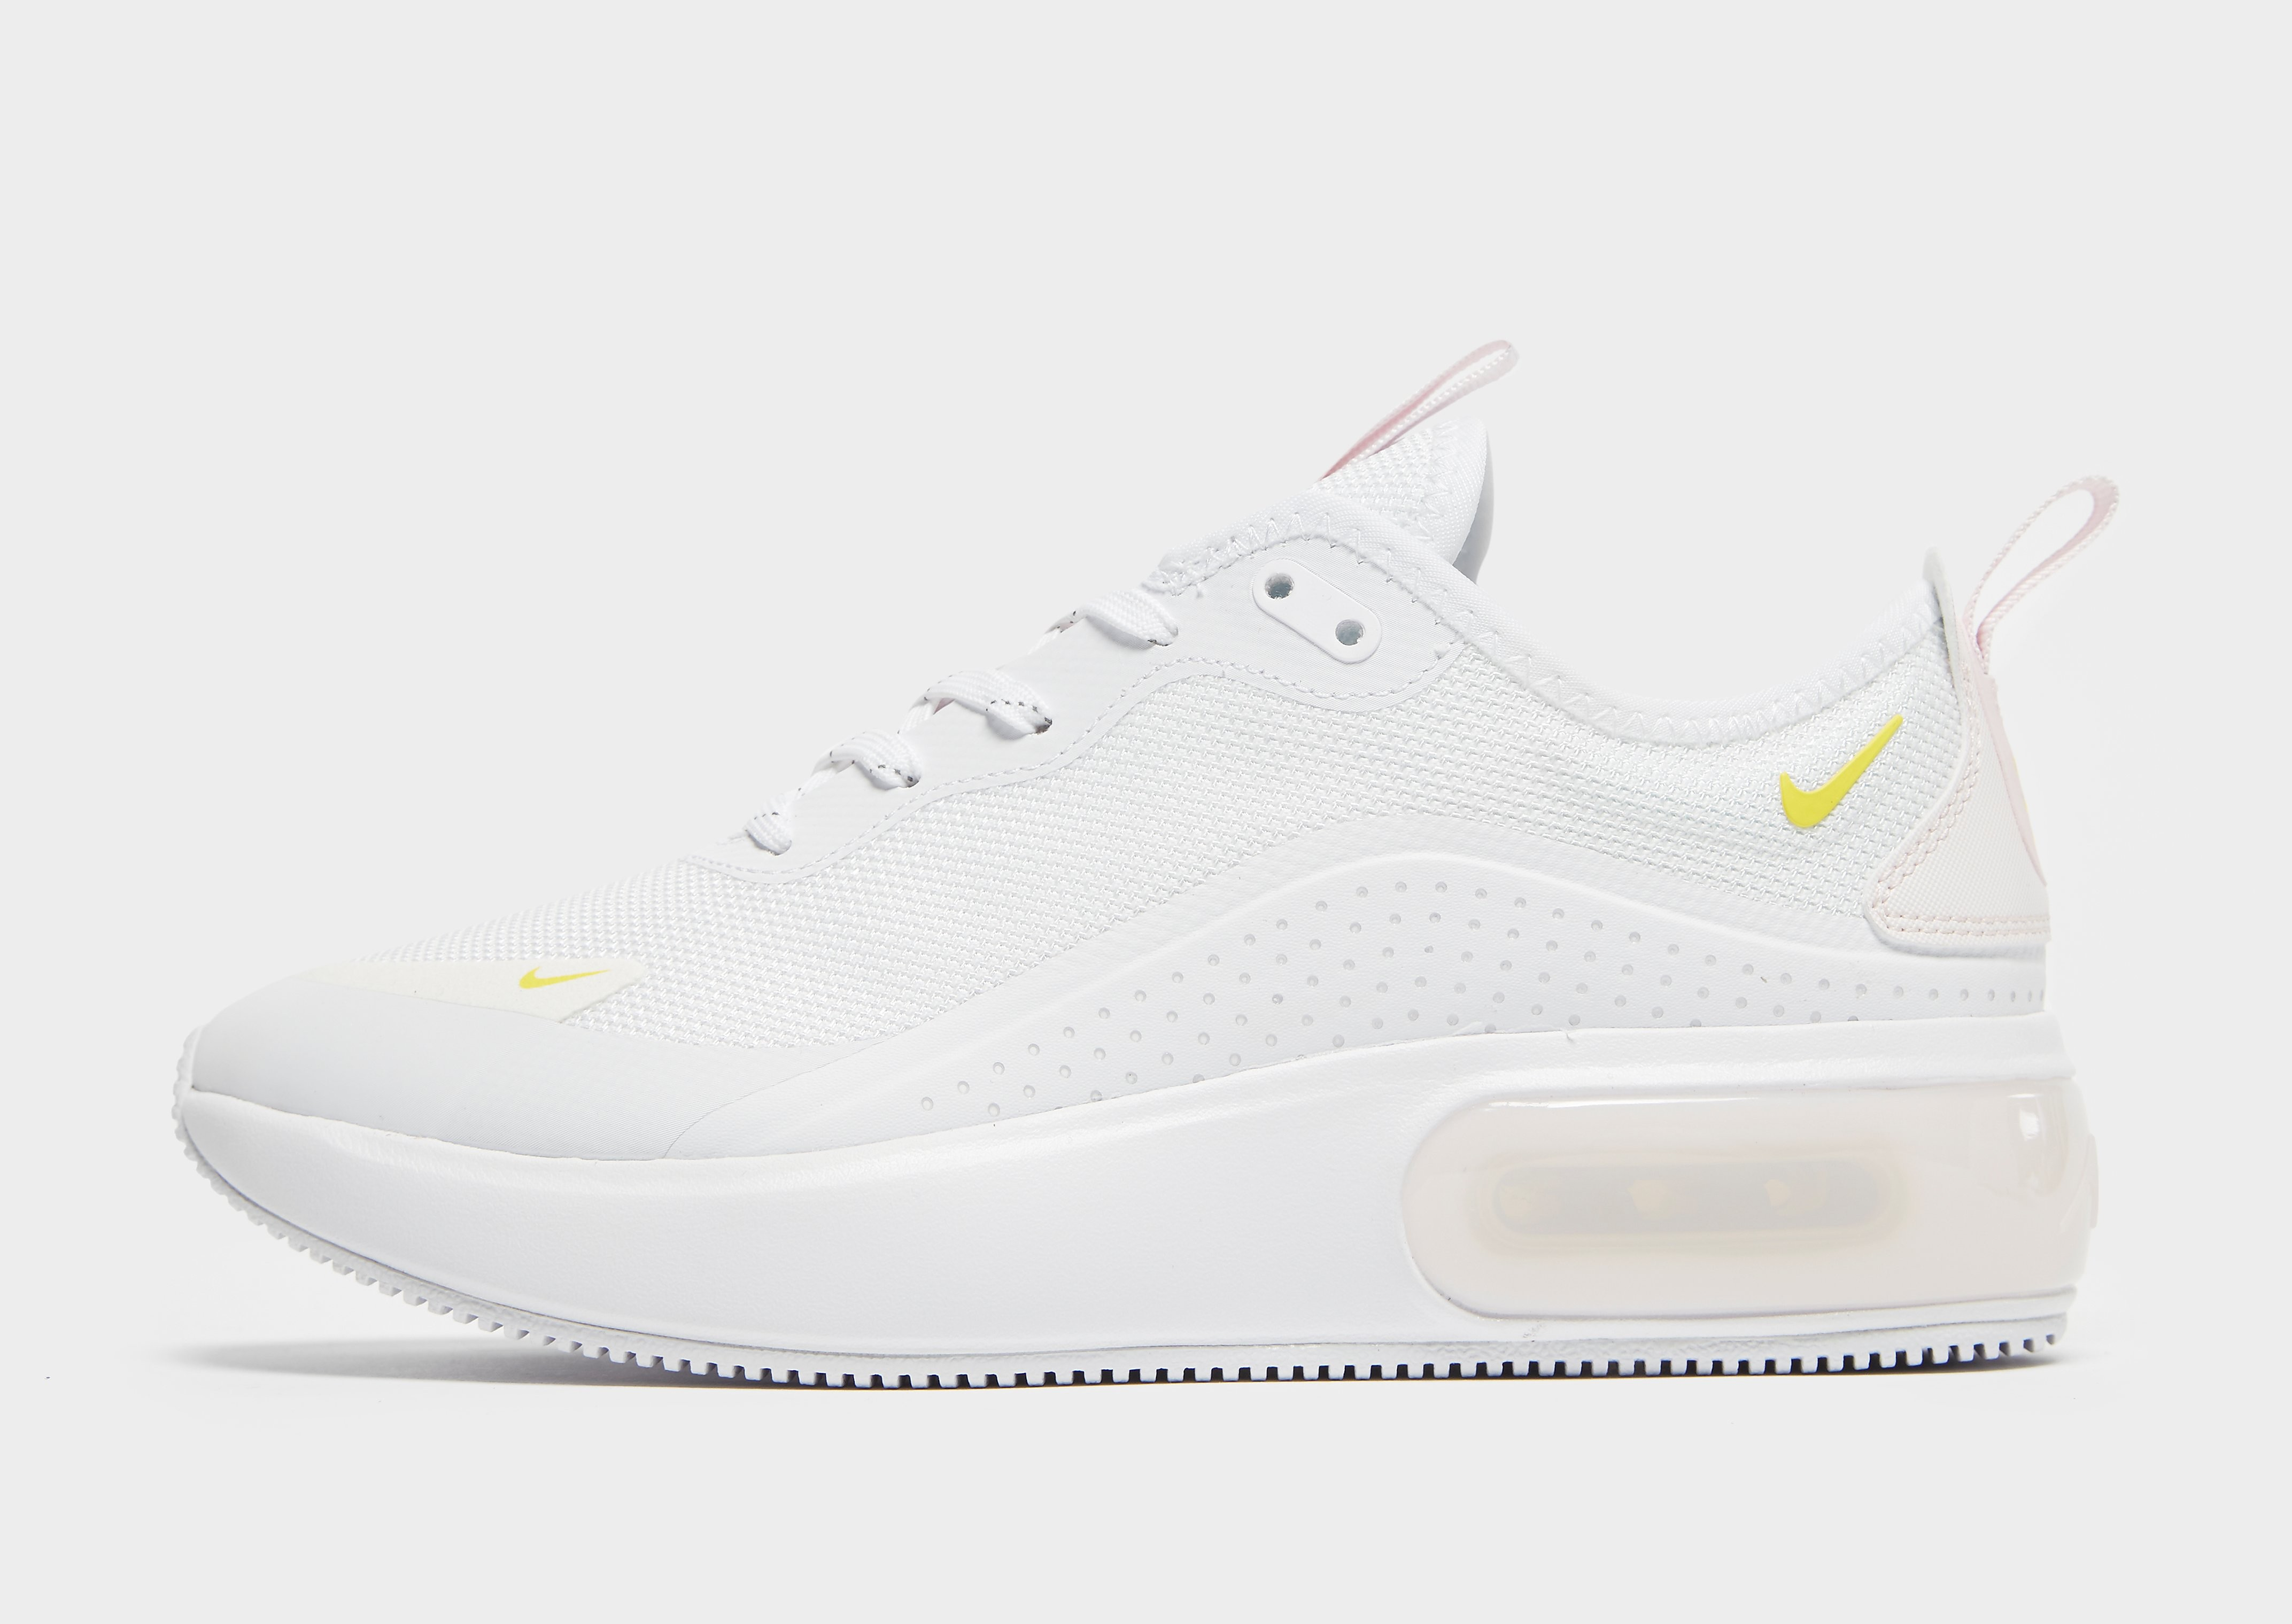 buying new sneakers new list Nike Air Max Dia Damen - Only at JD - Weiss - Womens, Weiss ...